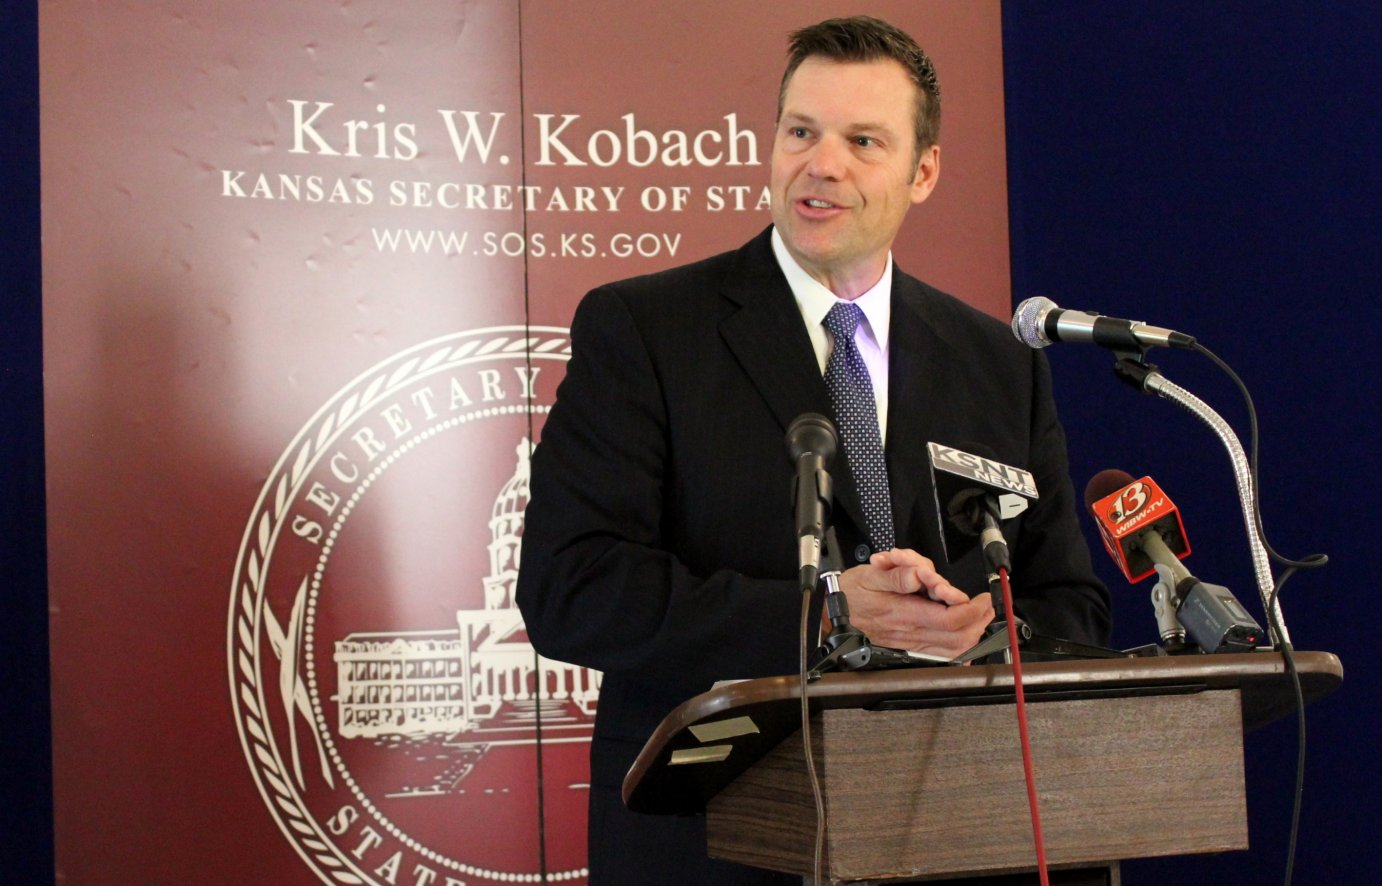 Secretary of State Kris Kobach. (File photo by Stephen Koranda)